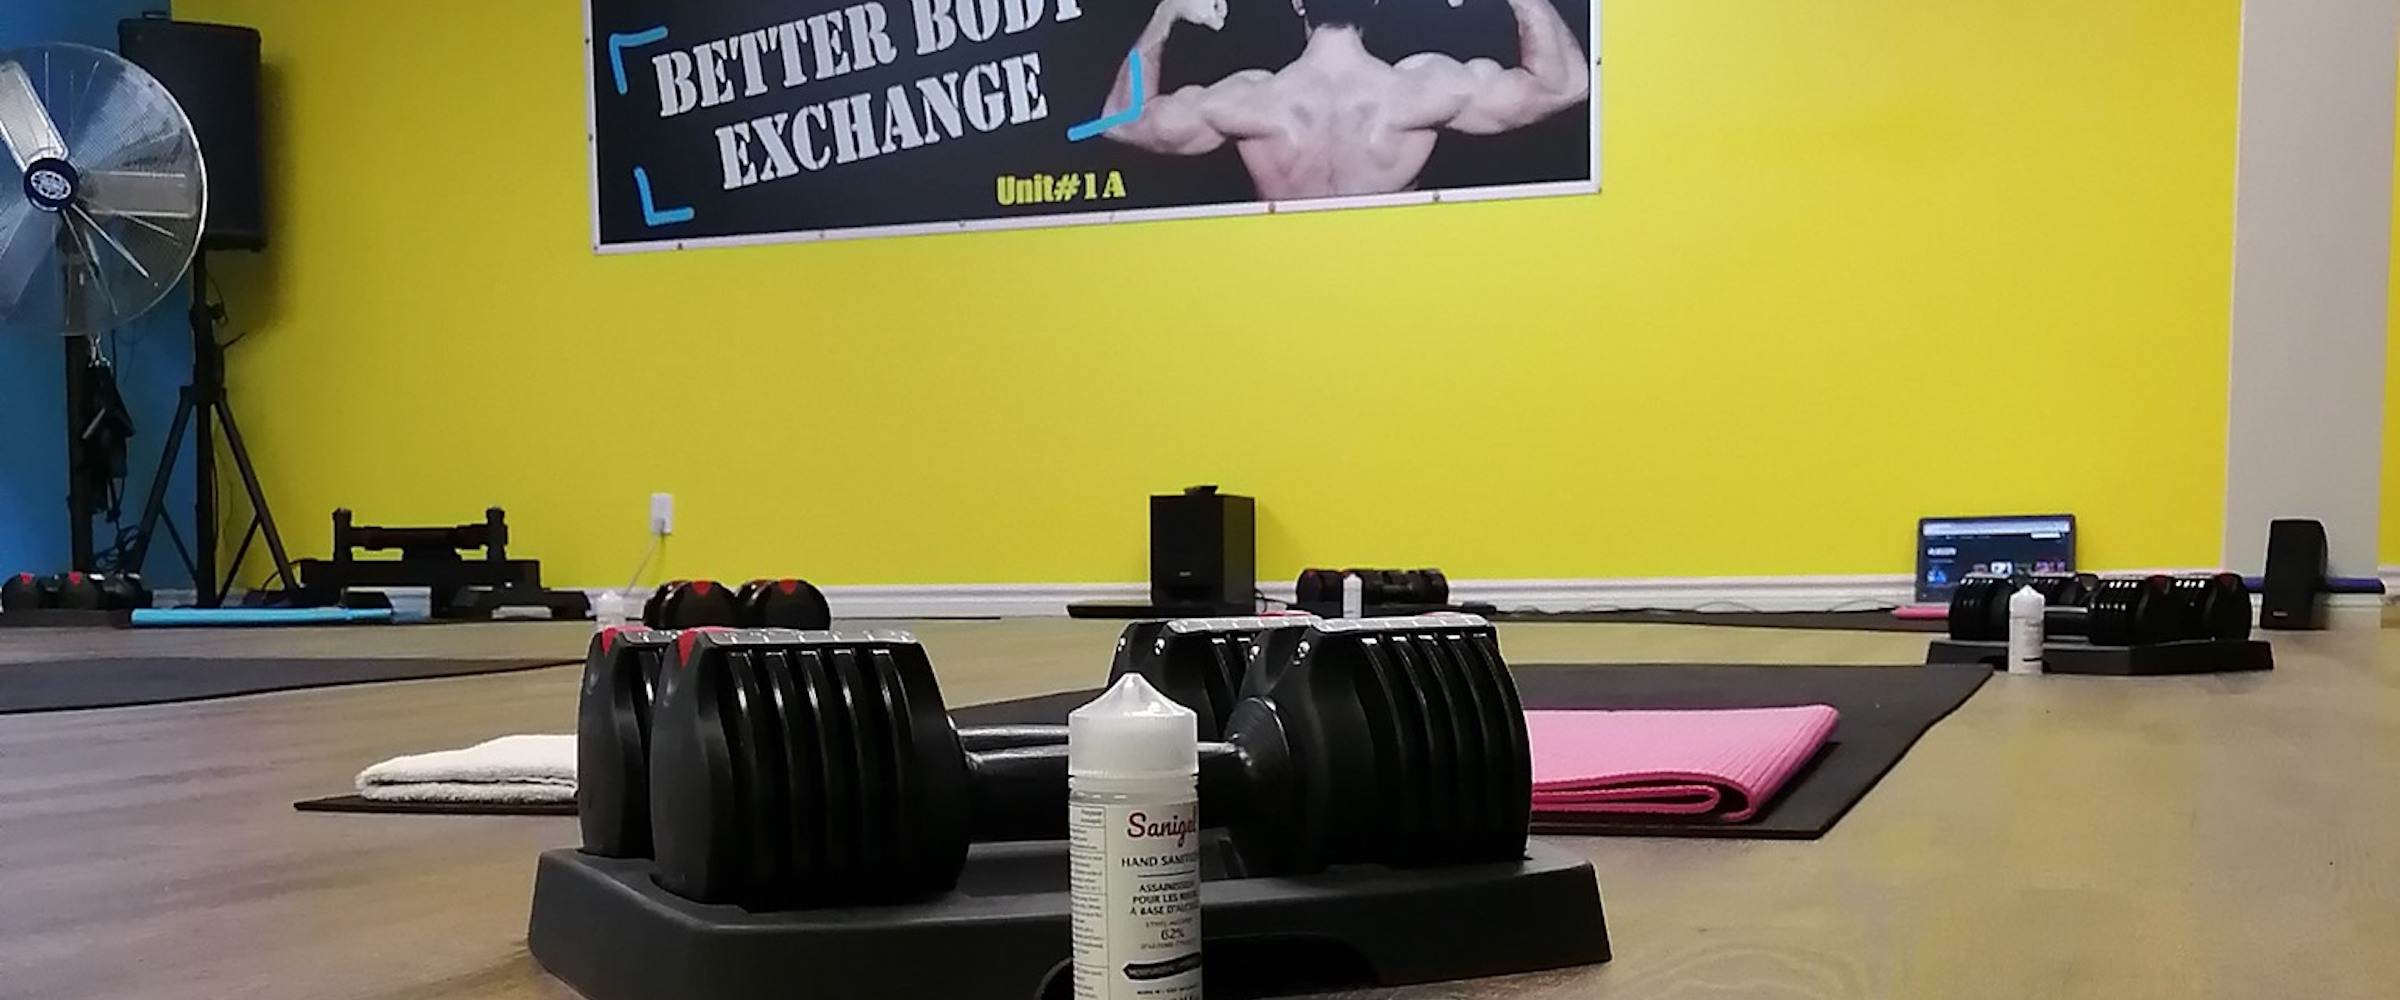 Class Schedule Header Image for Elite Training Facility